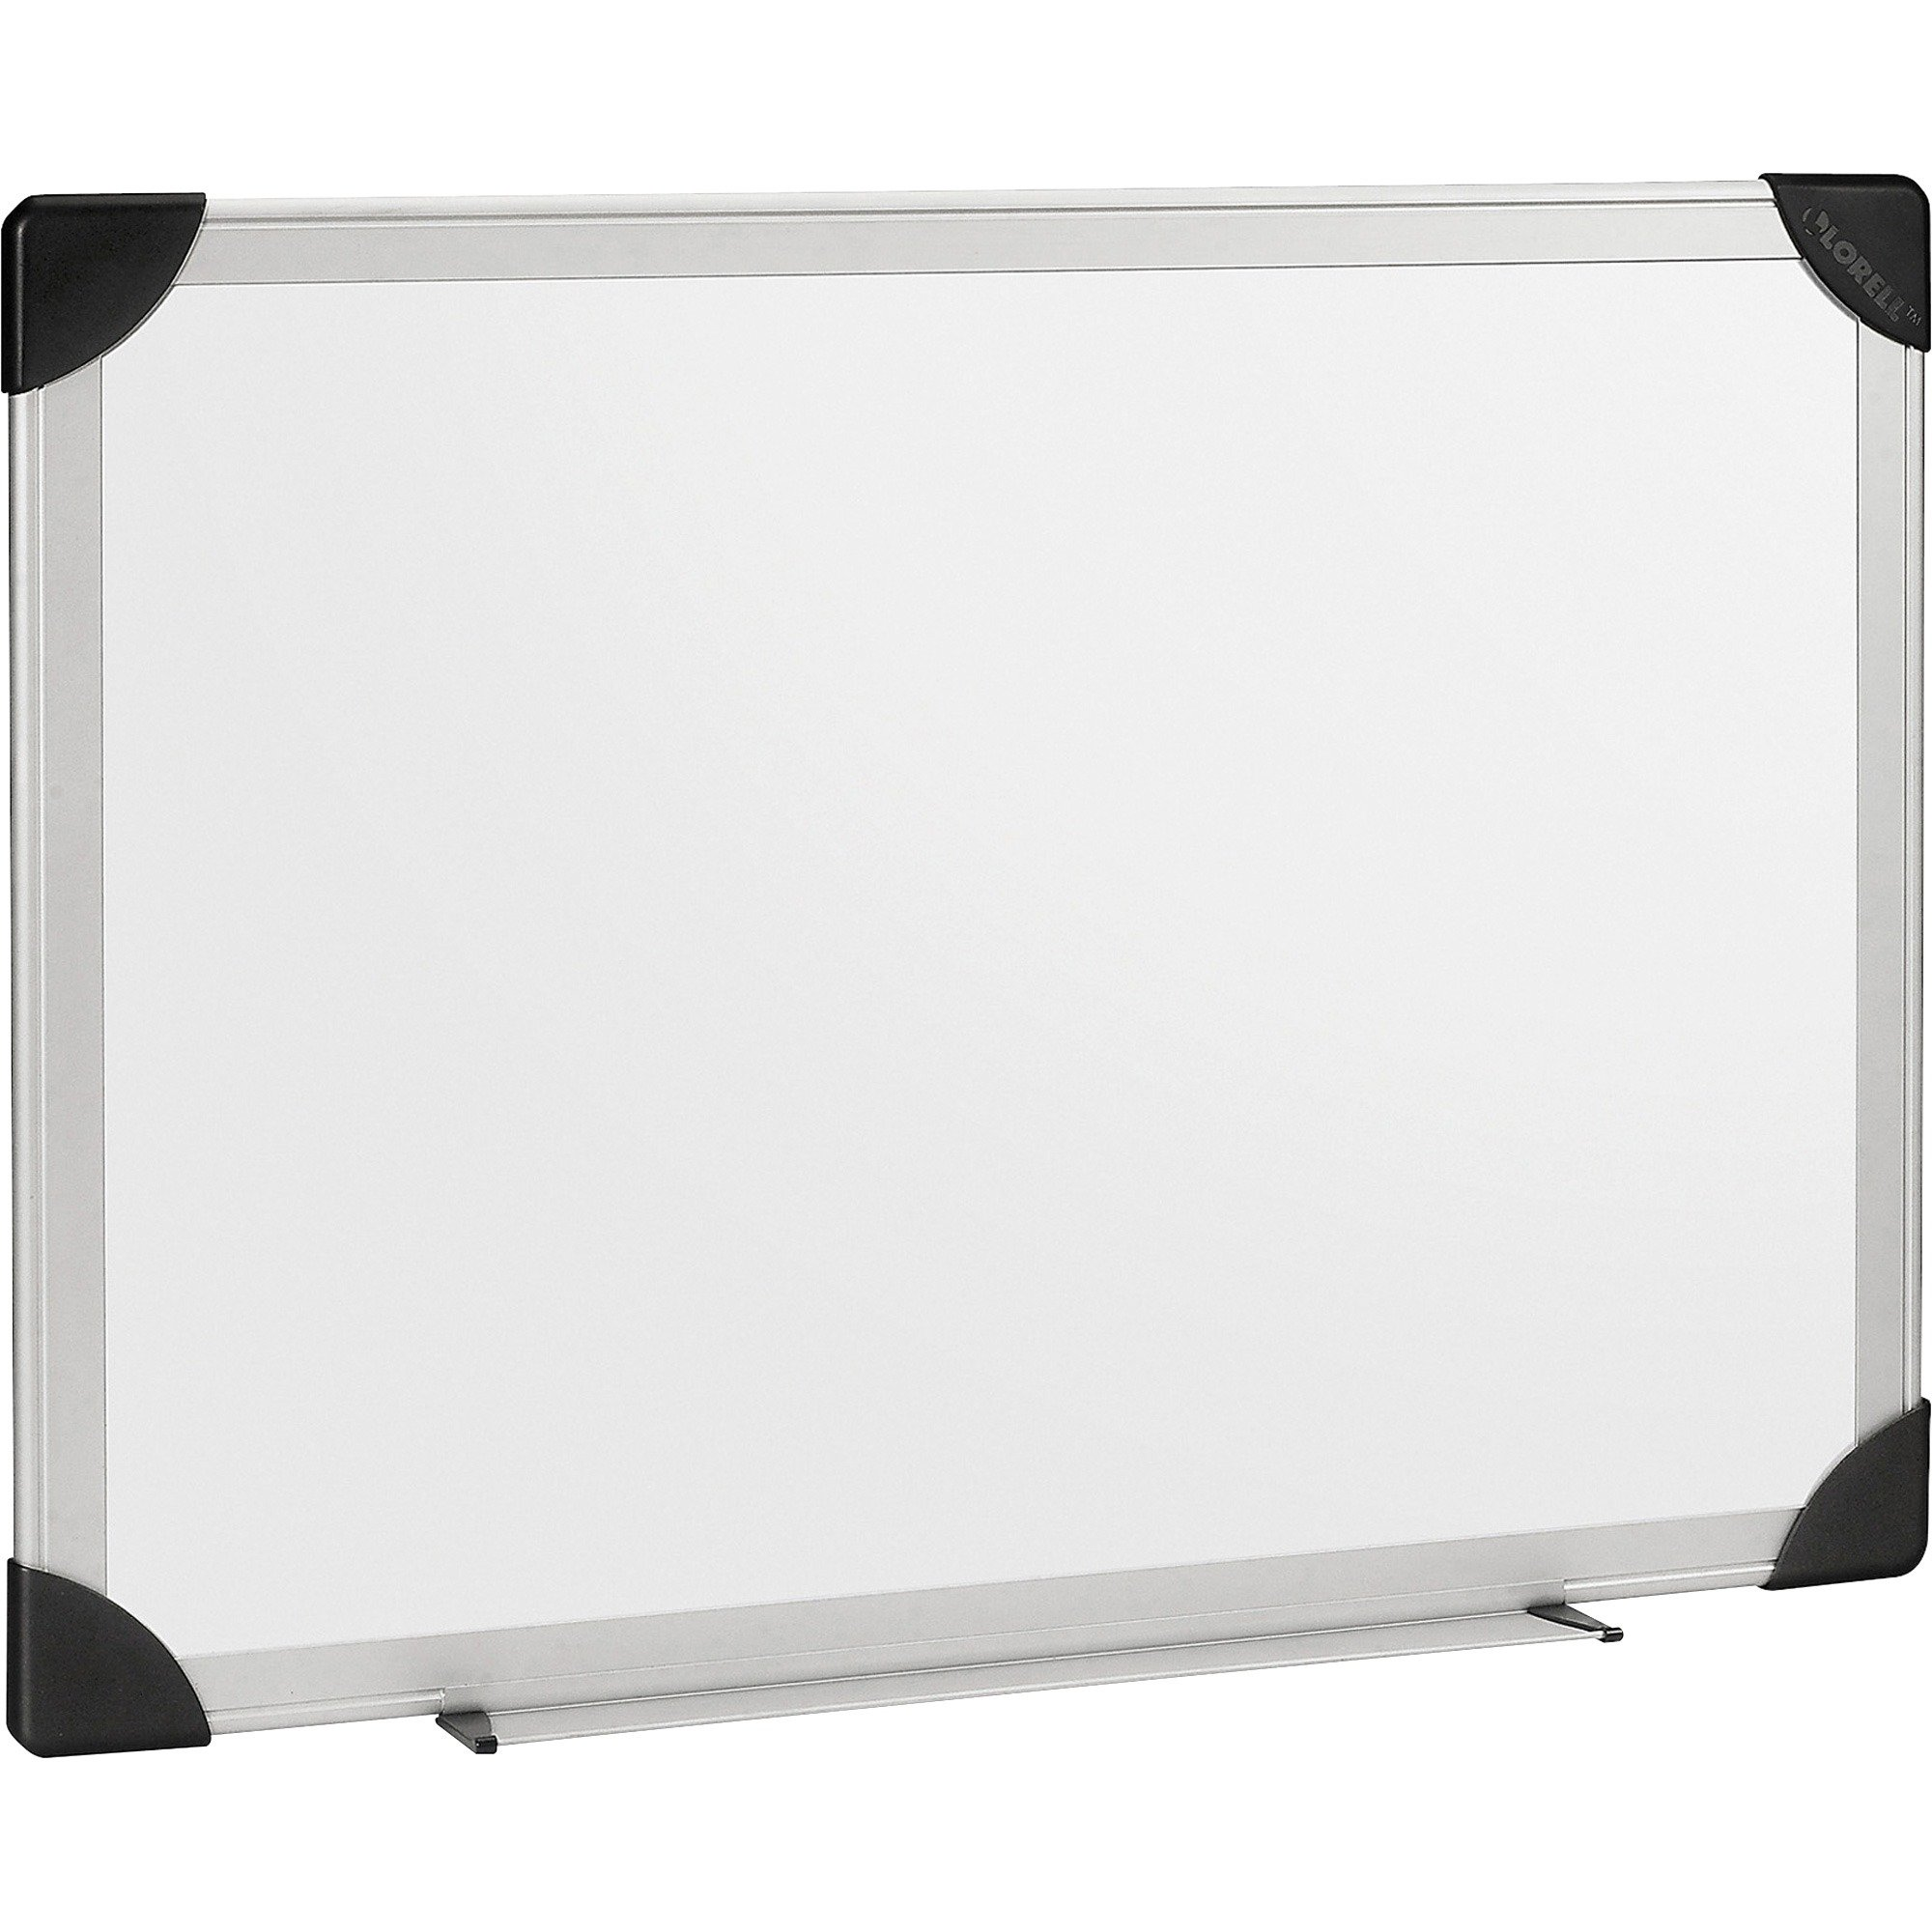 Lorell(R) Aluminum Frame Dry-Erase Board, 96in. x 48in.